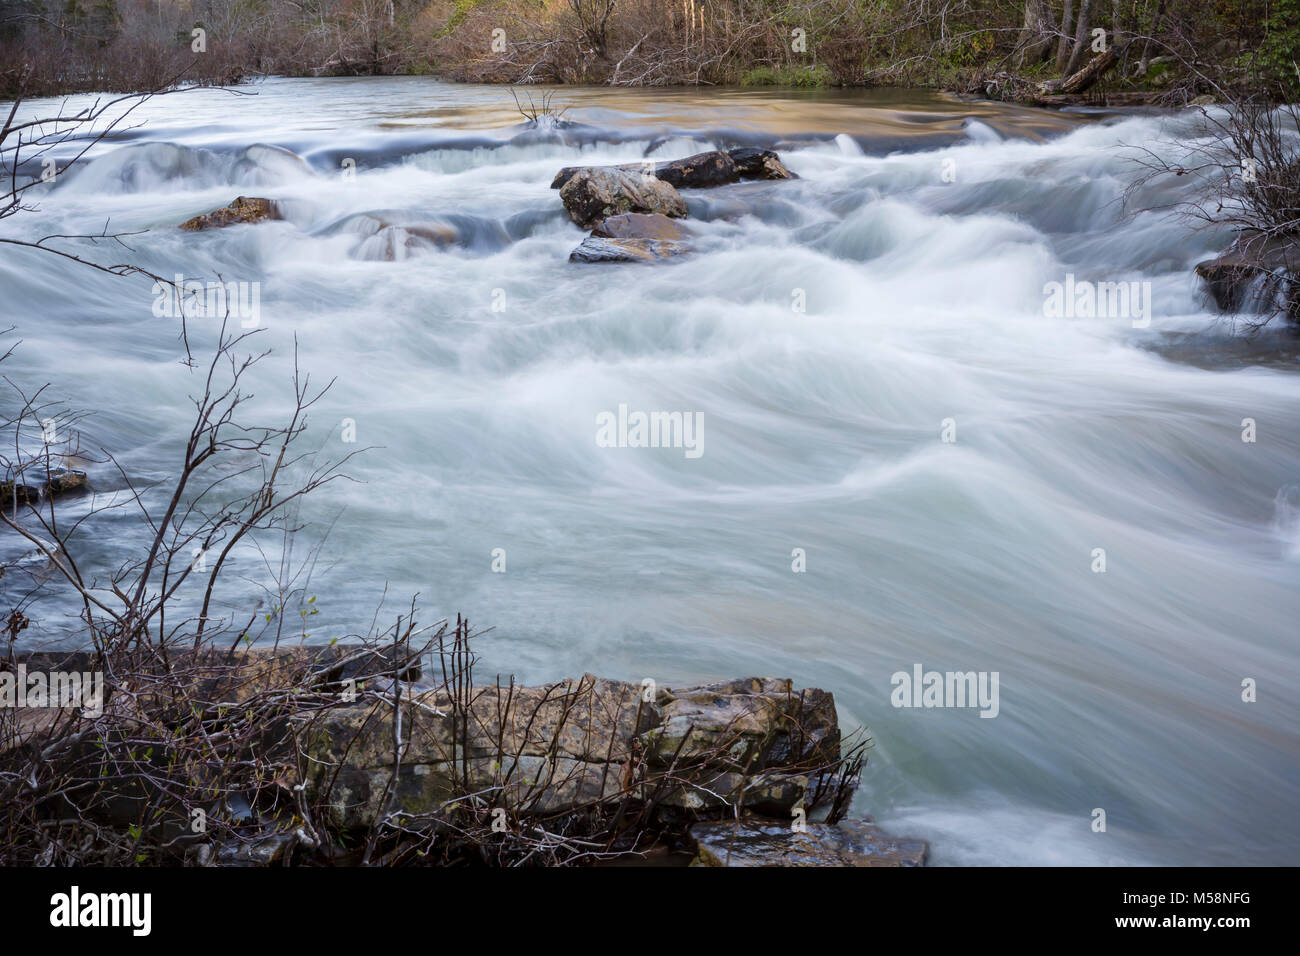 Rapids on Little River in Little River Canyon National Preserve, Alabama Stock Photo